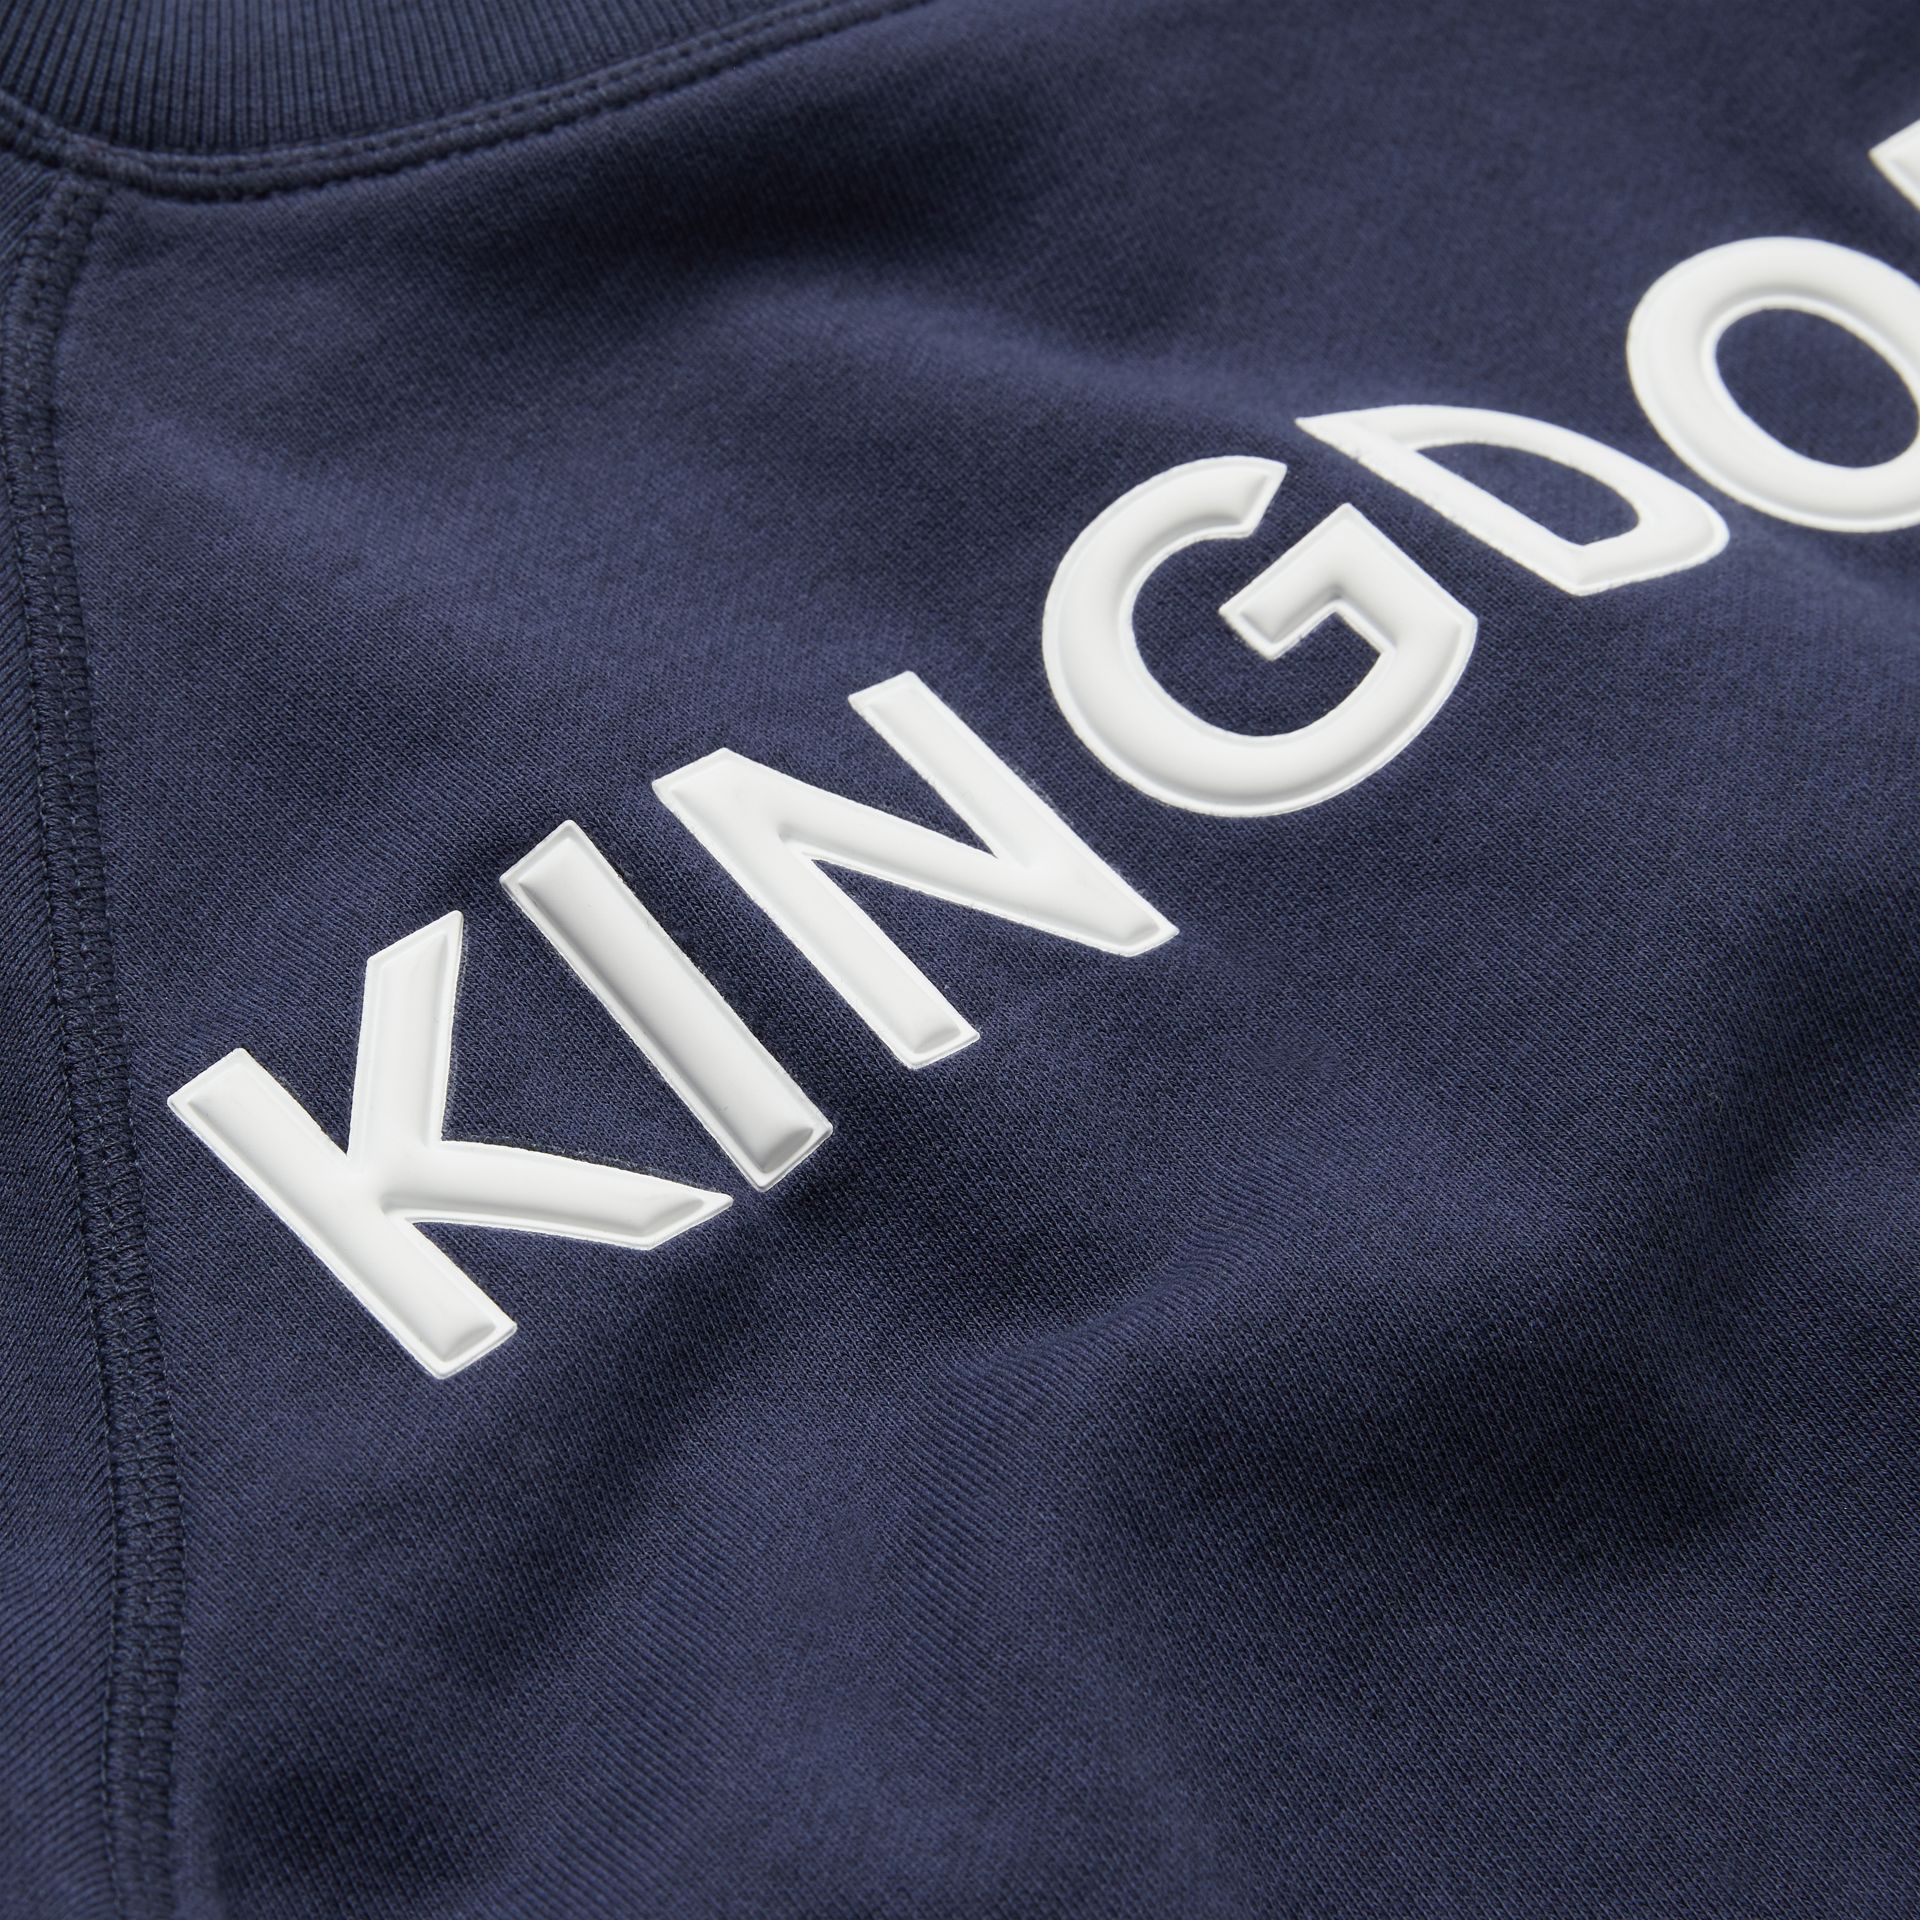 Kingdom Motif Cotton Sweatshirt in Slate Blue Melange | Burberry - gallery image 1